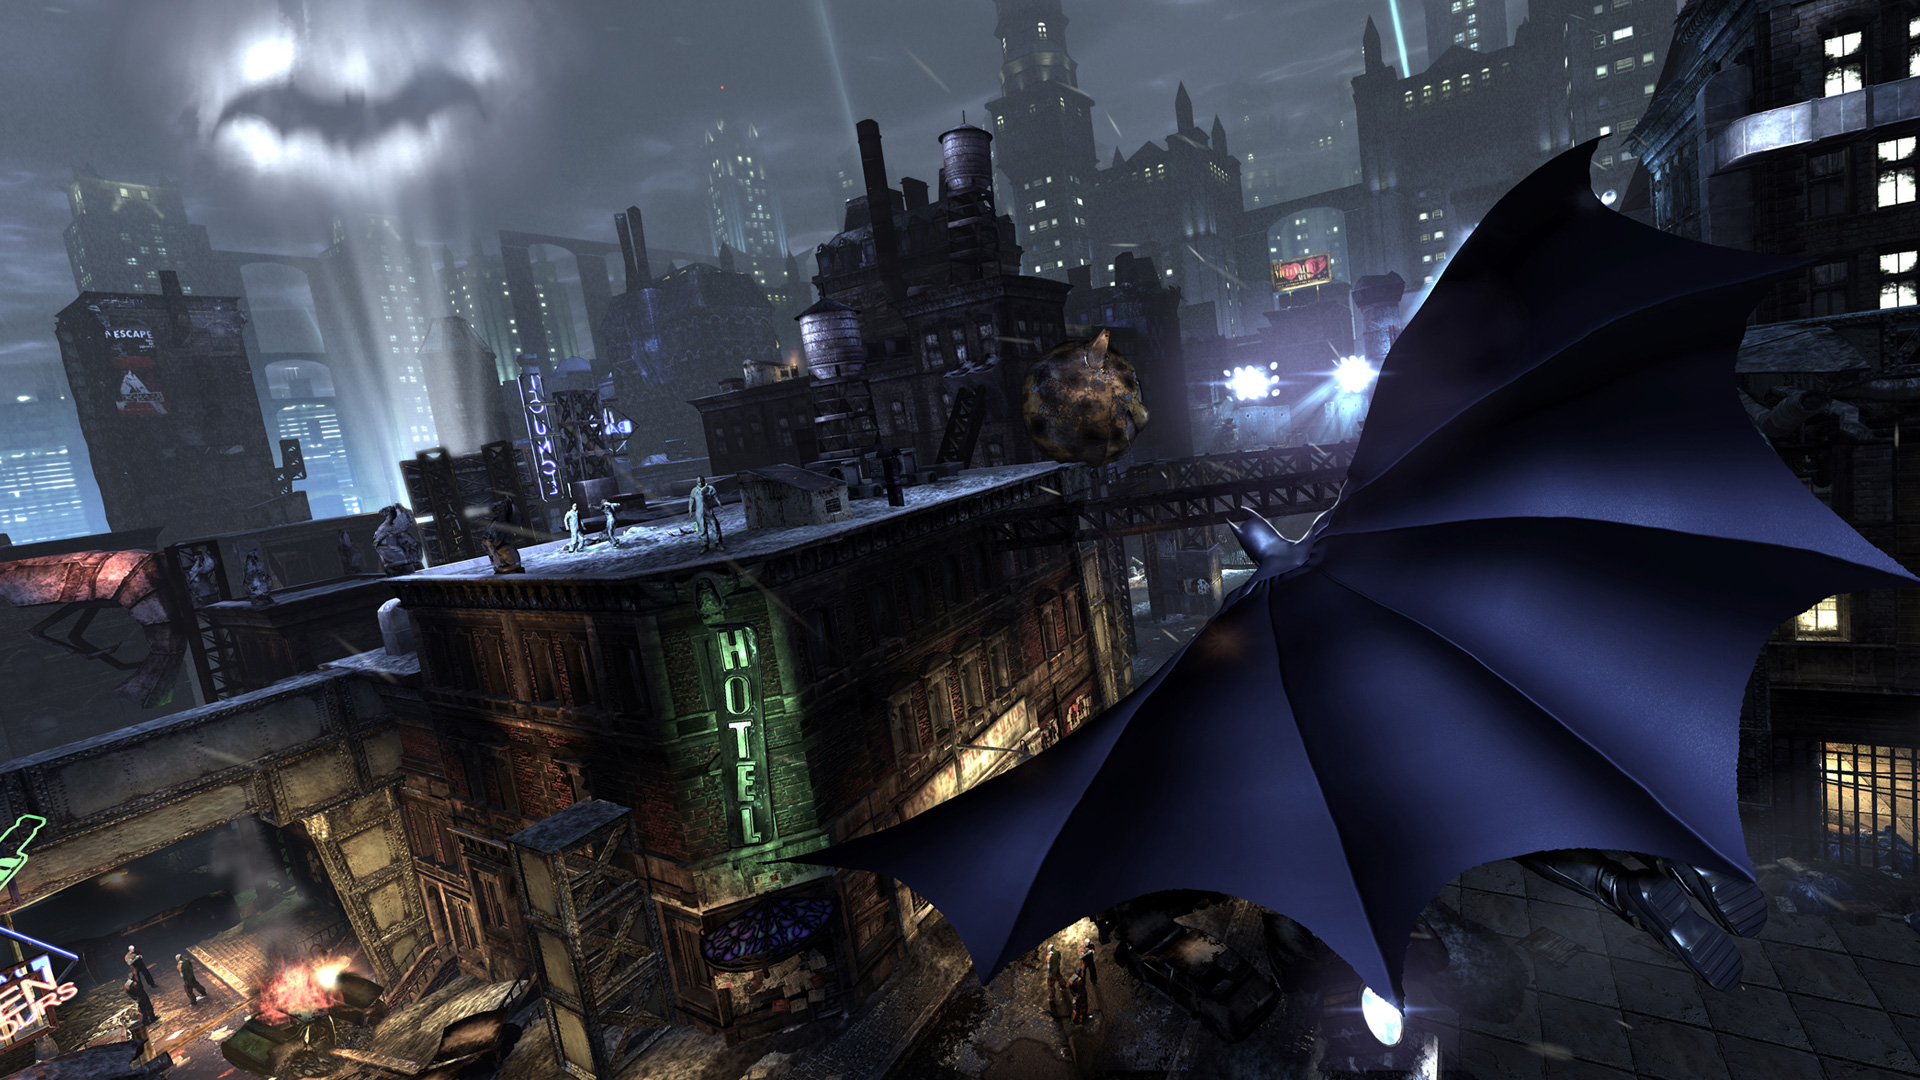 Batman: Arkham City Wallpaper in 1920x1080